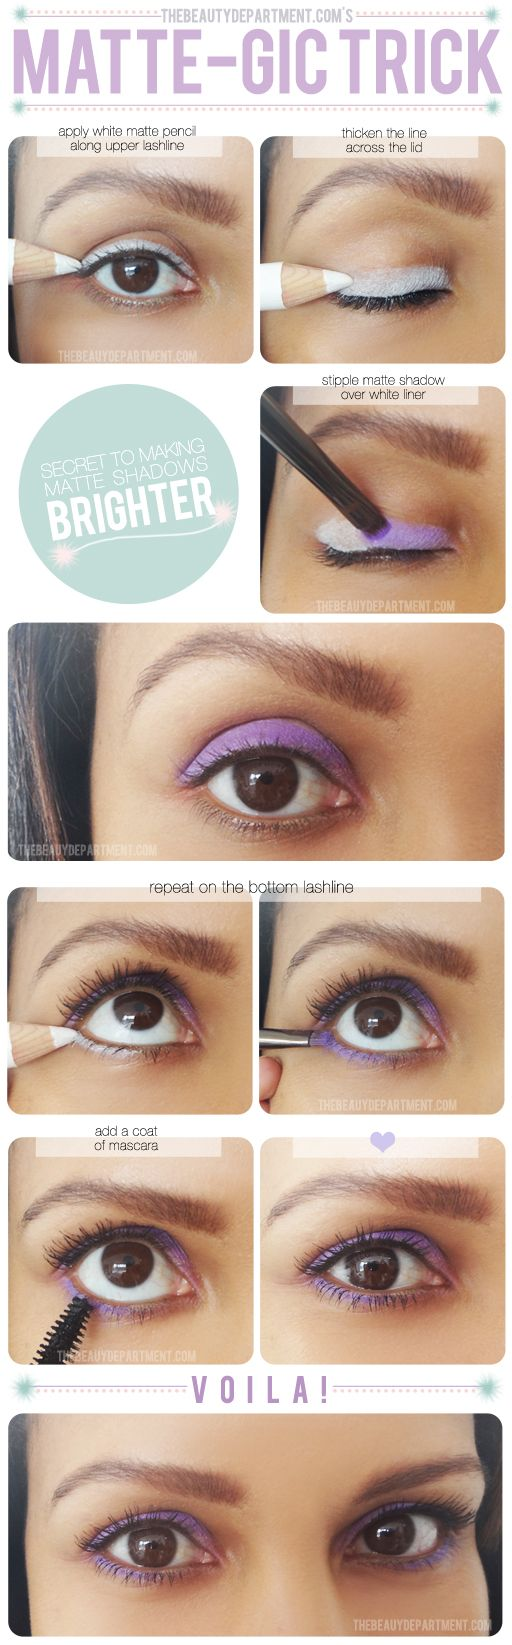 White liner is the ultimate primer for a brighter matte shadow payoff!